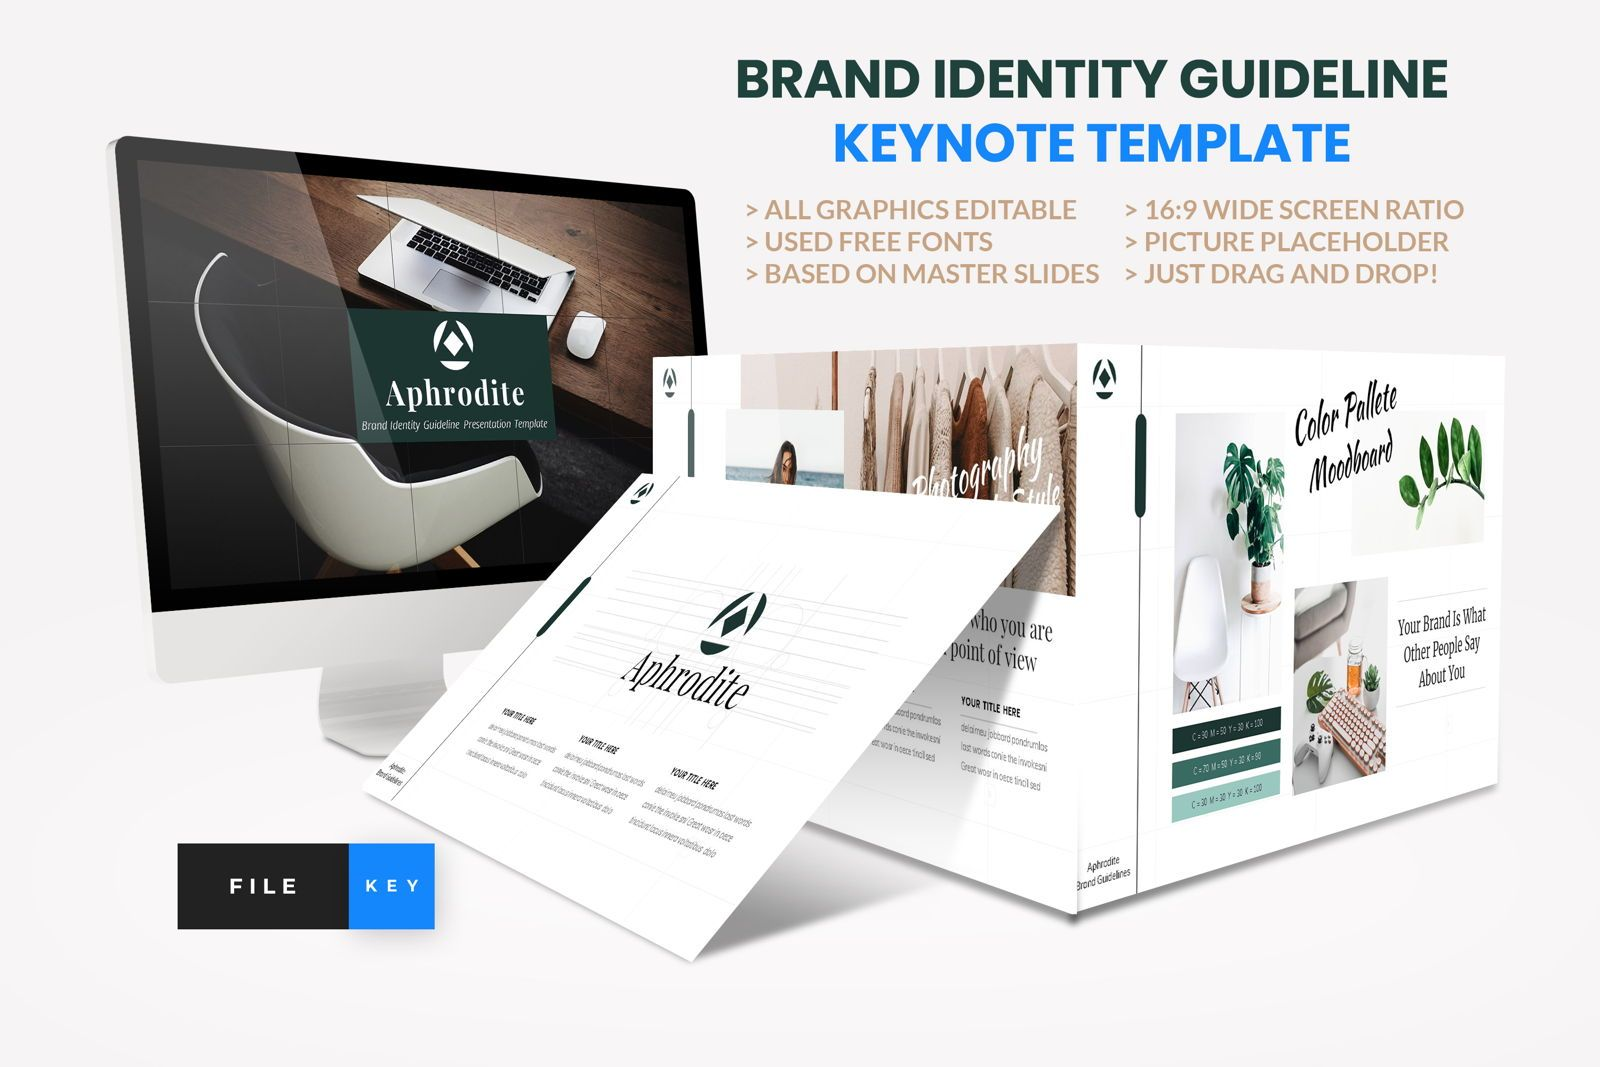 Brand Identity Guideline Keynote Template, 08580, Presentation Templates — PoweredTemplate.com